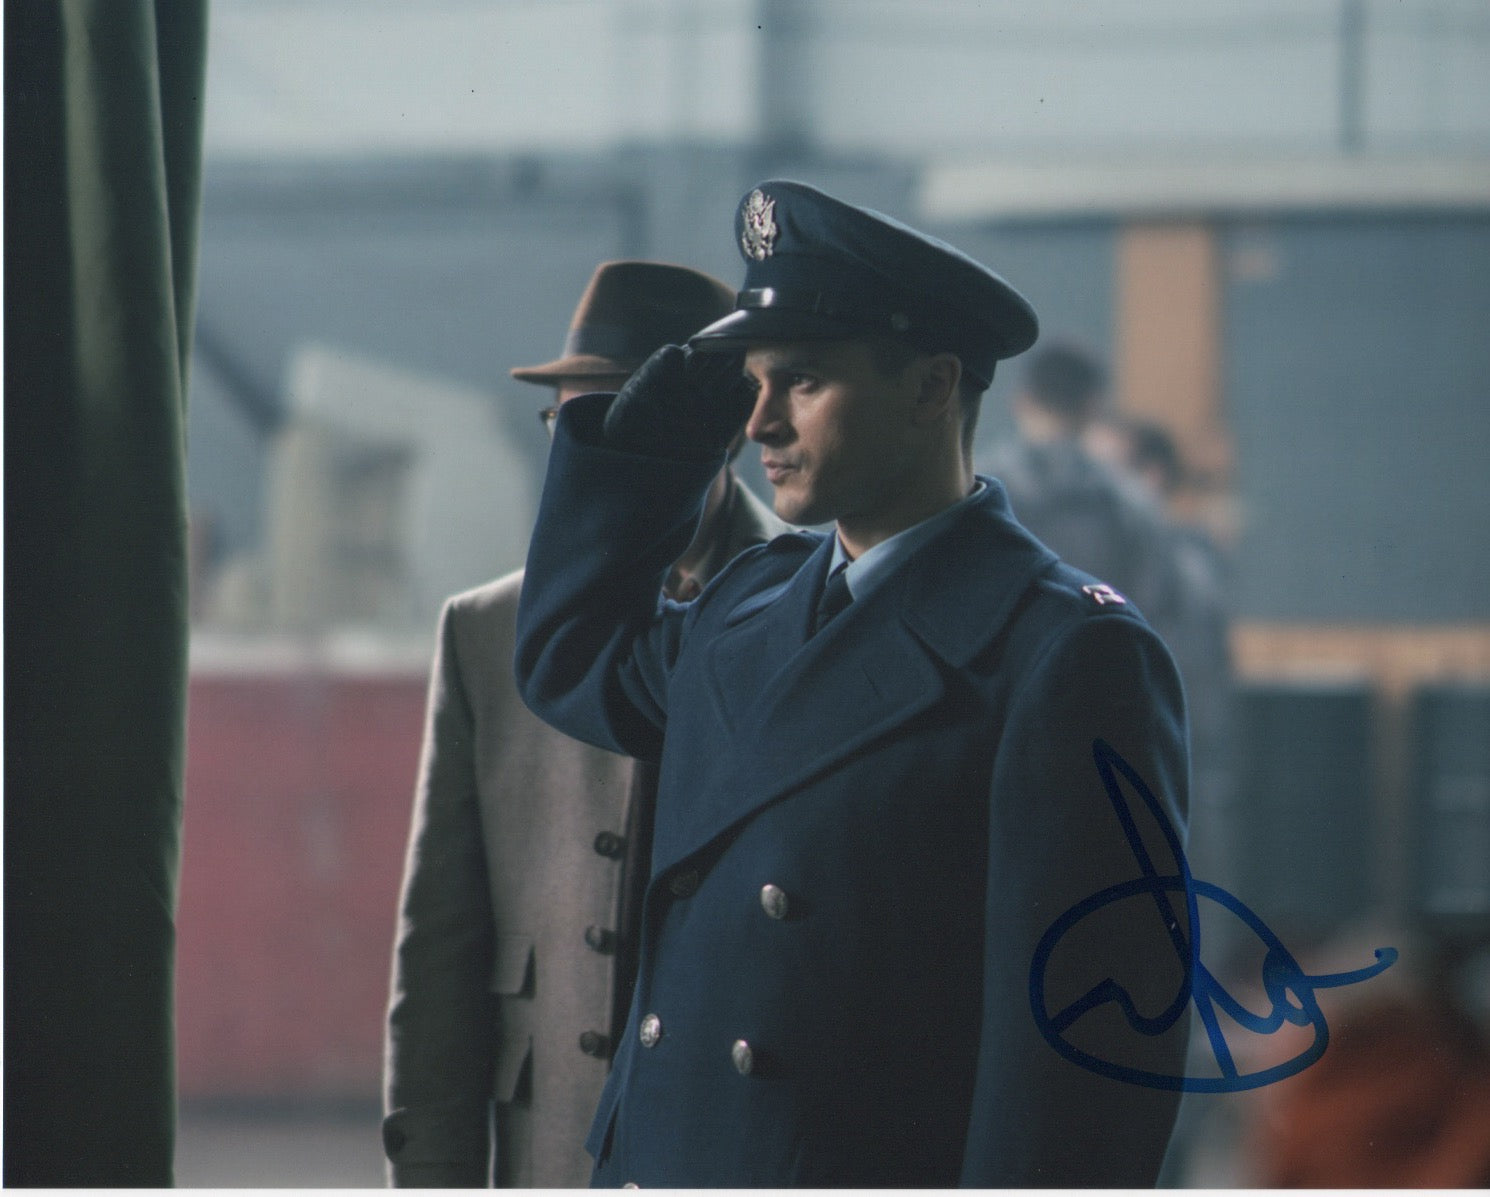 Michael Malarkey Project Blue Book Signed Autograph 8x10 Photo #9 - Outlaw Hobbies Authentic Autographs